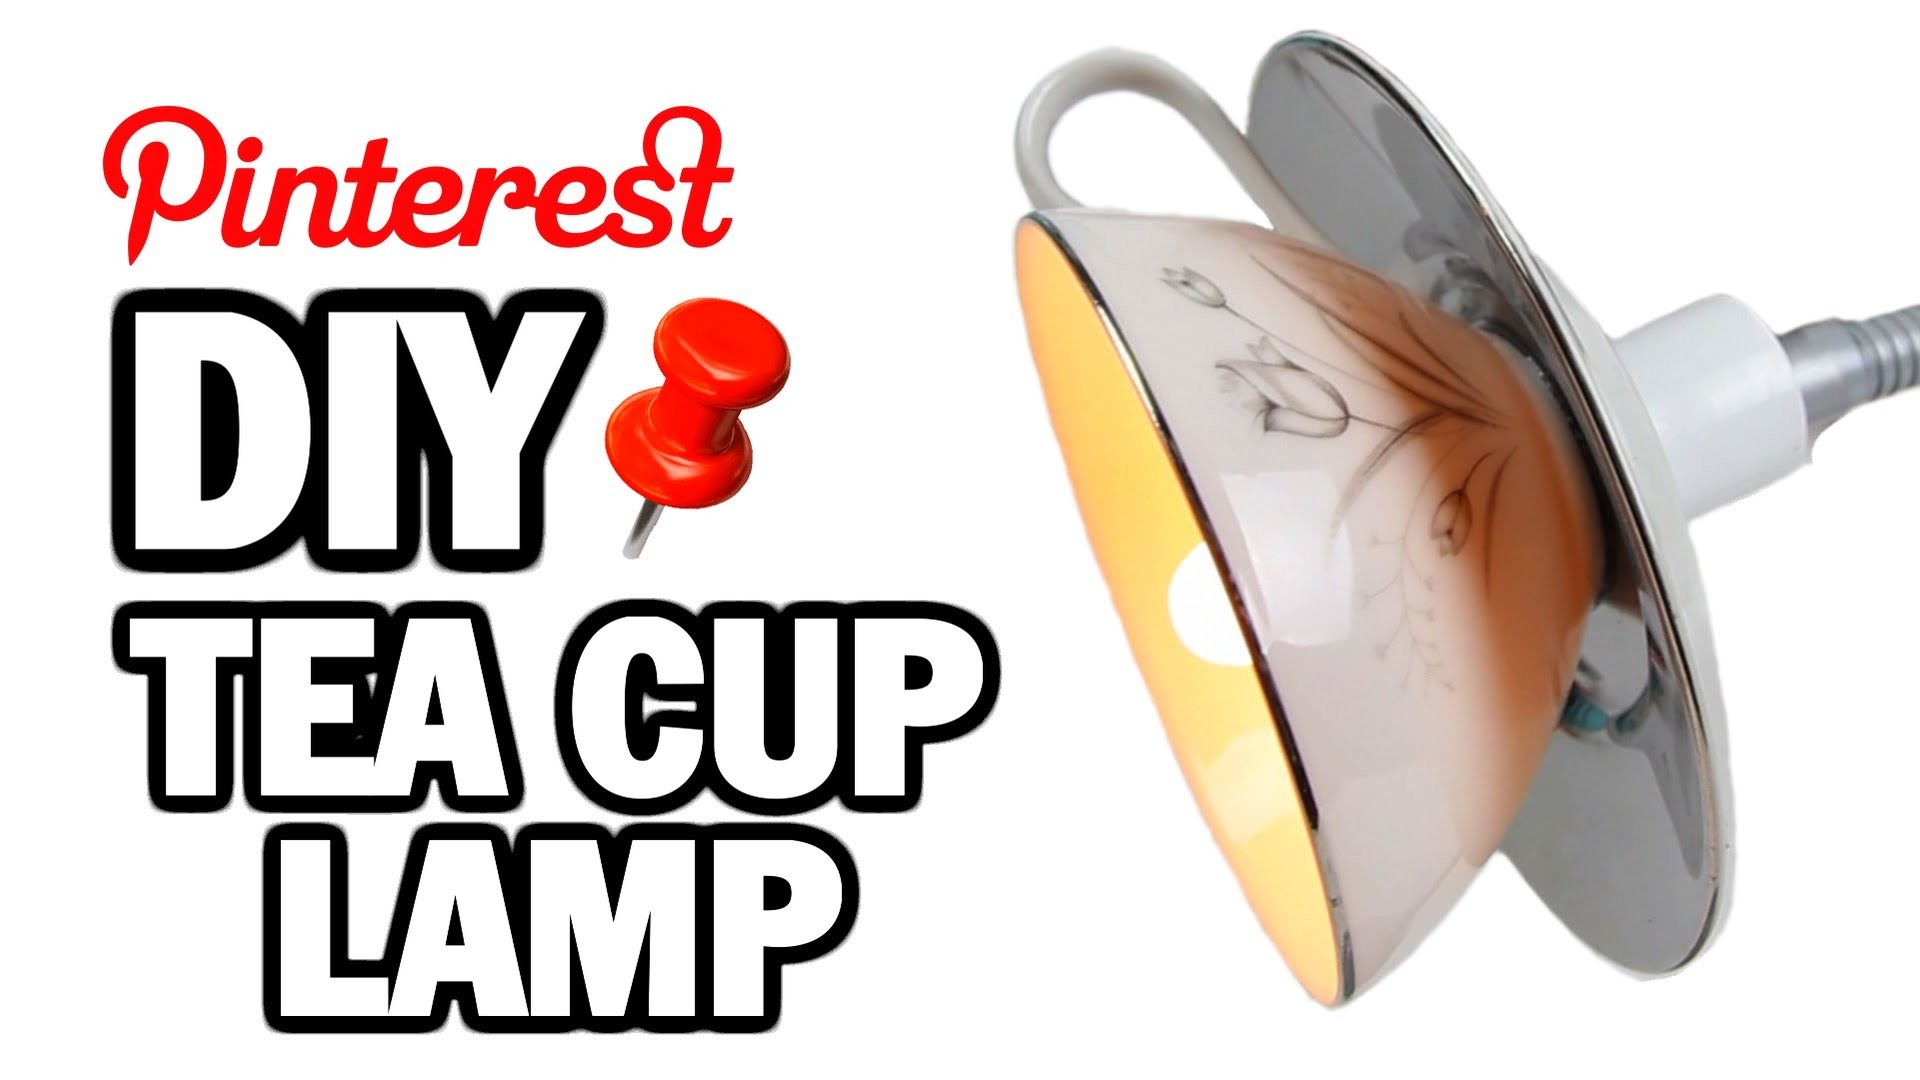 DIY Tea Cup Lamp - MAN VS PIN #2